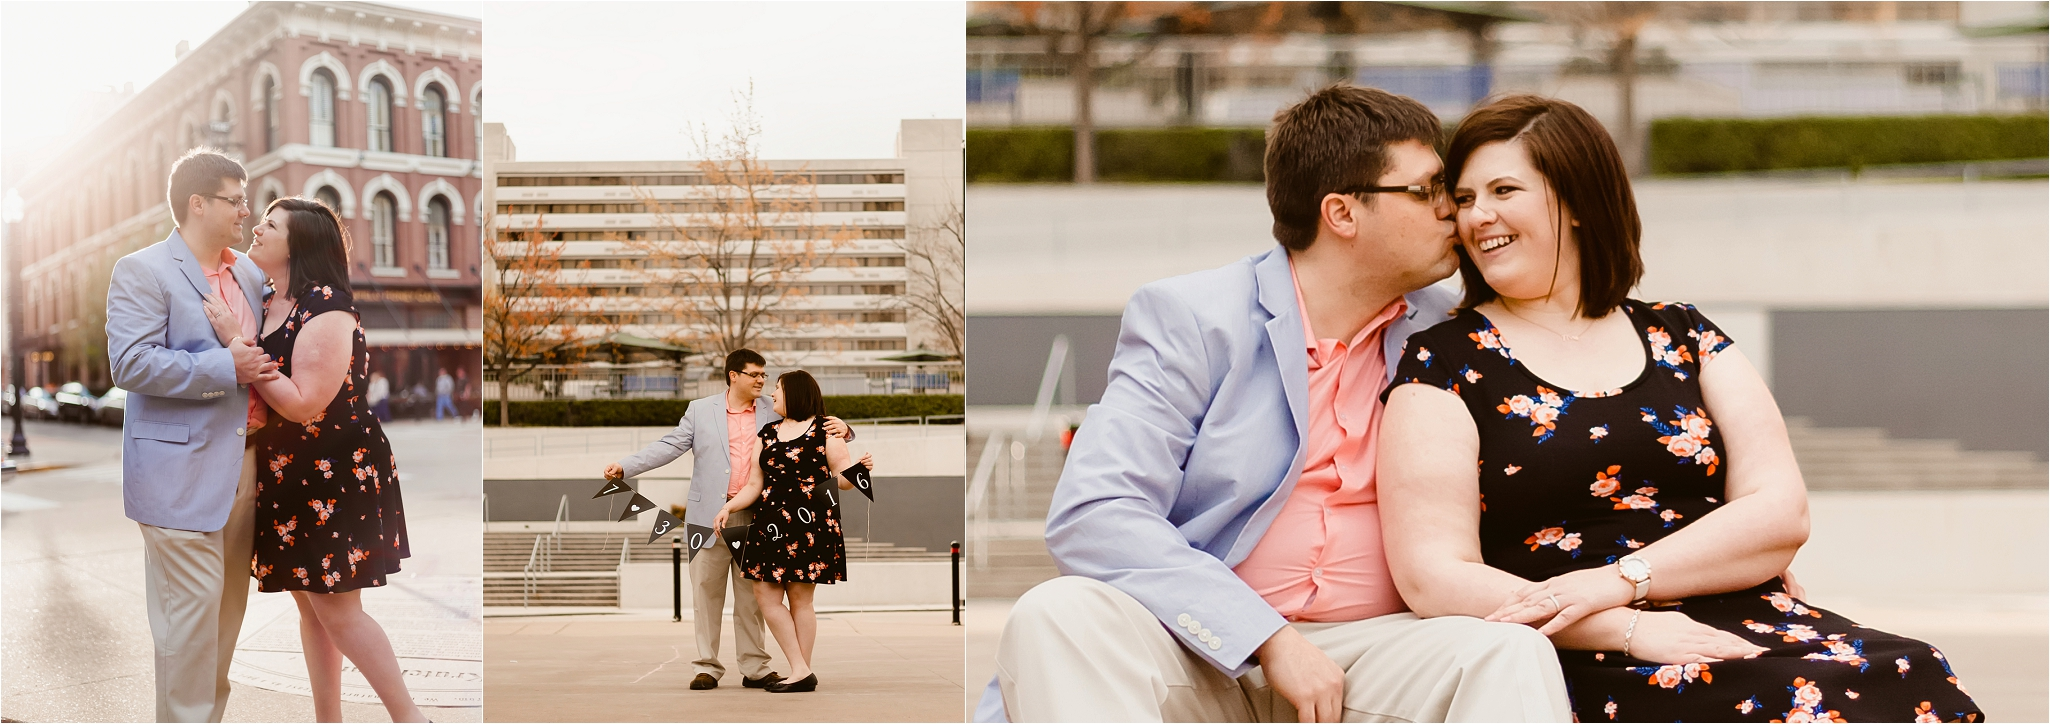 downtown knoxville engagement session knoxville wedding photographer